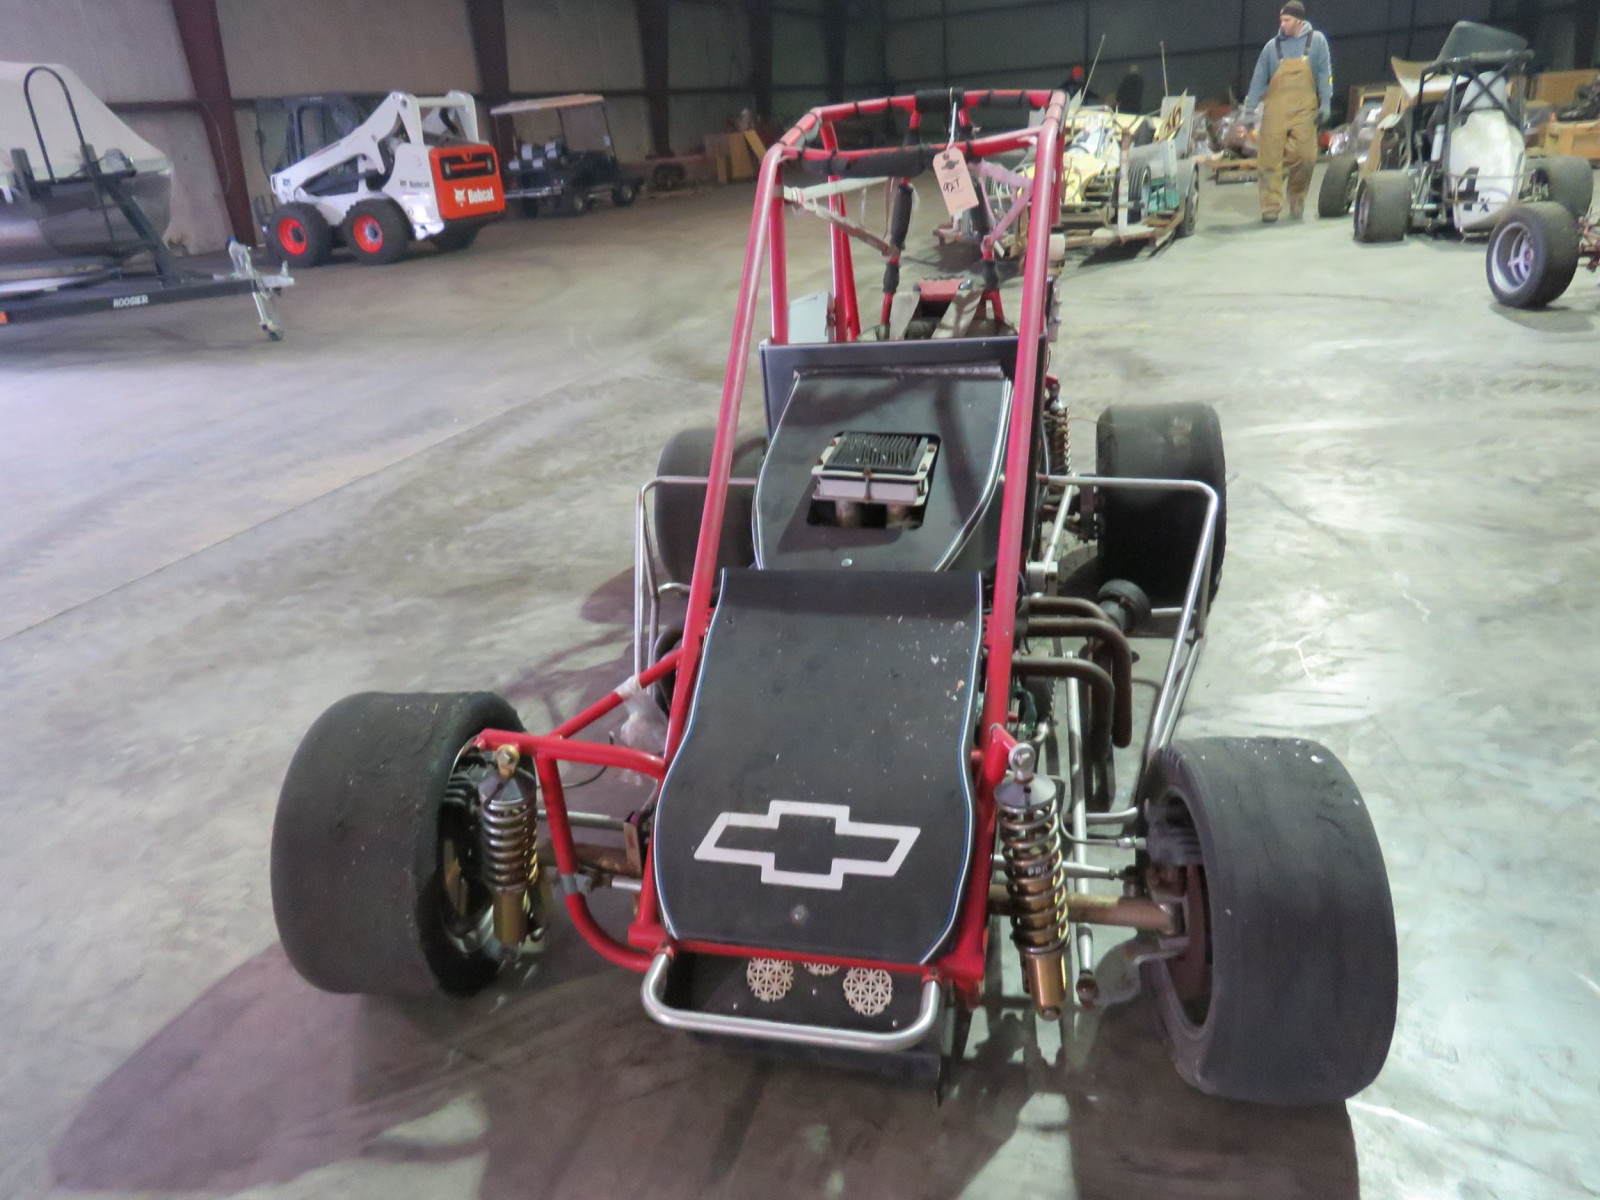 The Beast Vintage Midget Race Car - Image 2